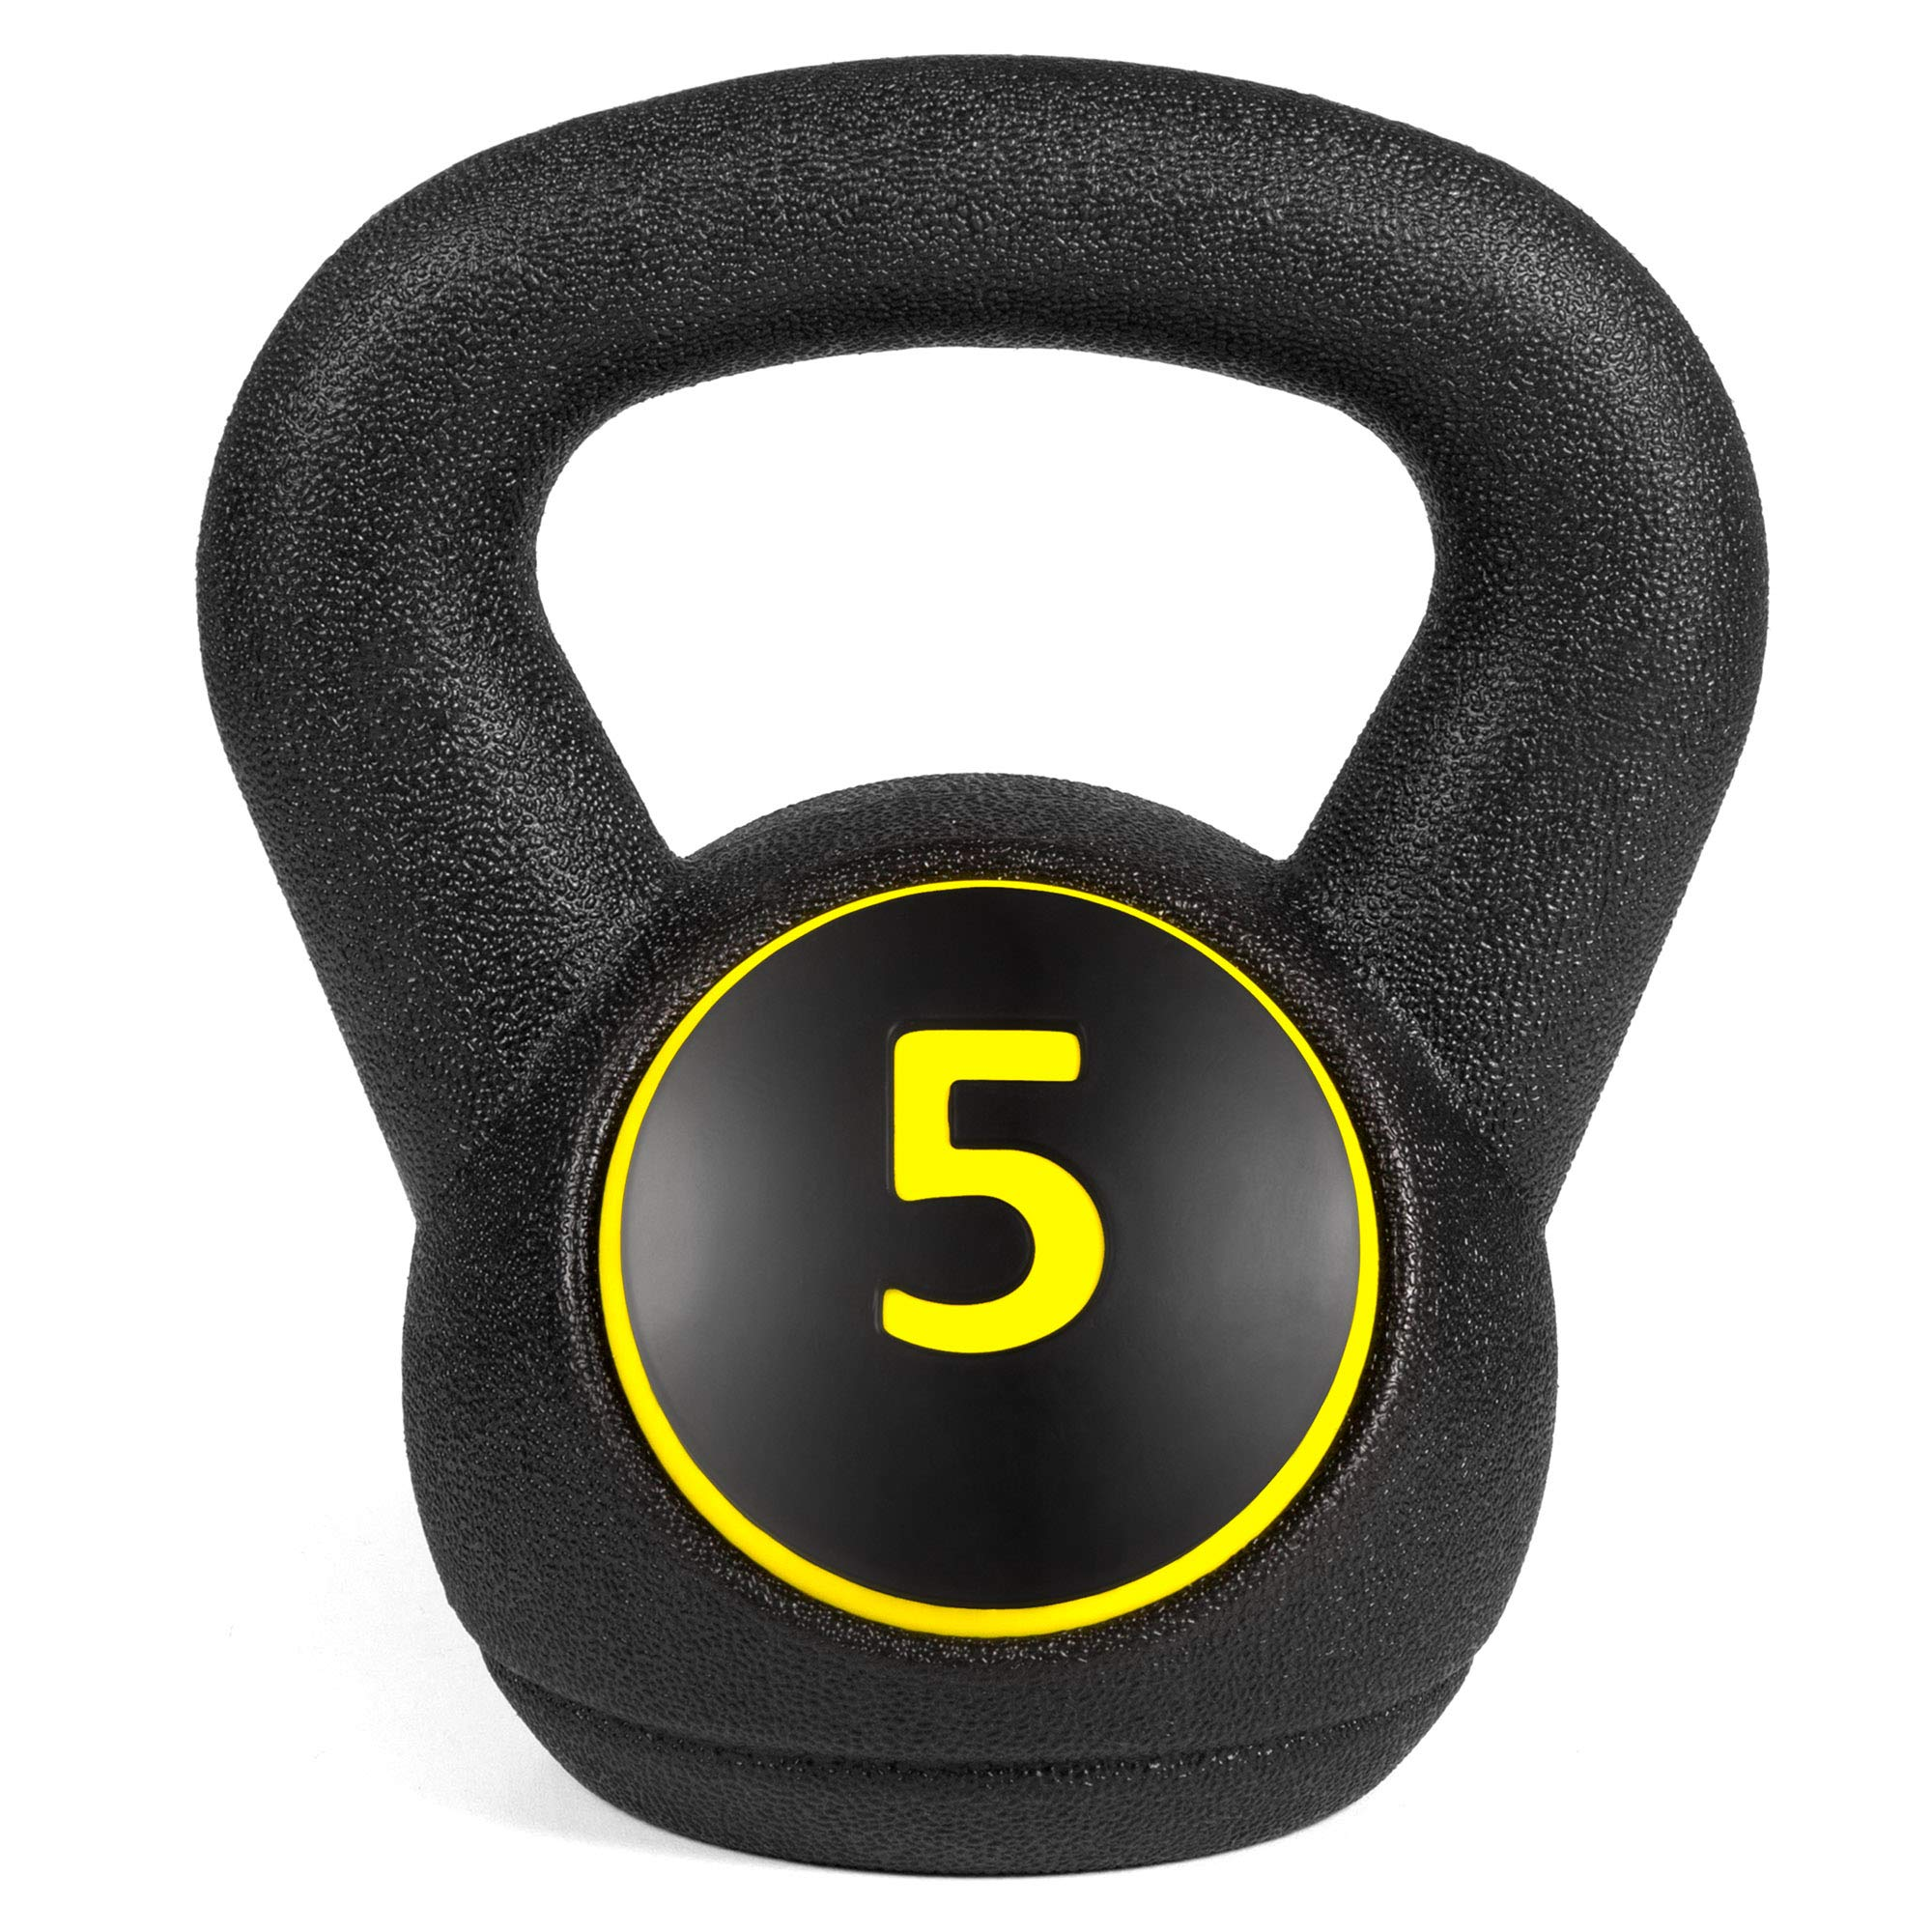 Best Choice Products 3-Piece HDPE Kettlebell Exercise Fitness Weight Set for Full Body Workout w/ 5lb, 10lb, 15lb Weights, Wide Grips, Base Rack - Black by Best Choice Products (Image #7)